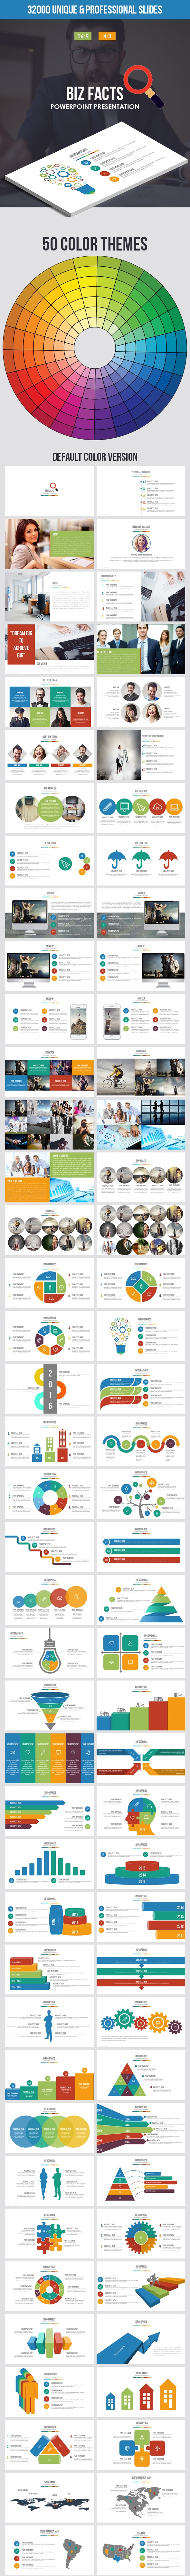 Biz Facts Powerpoint Template - Business PowerPoint Templates